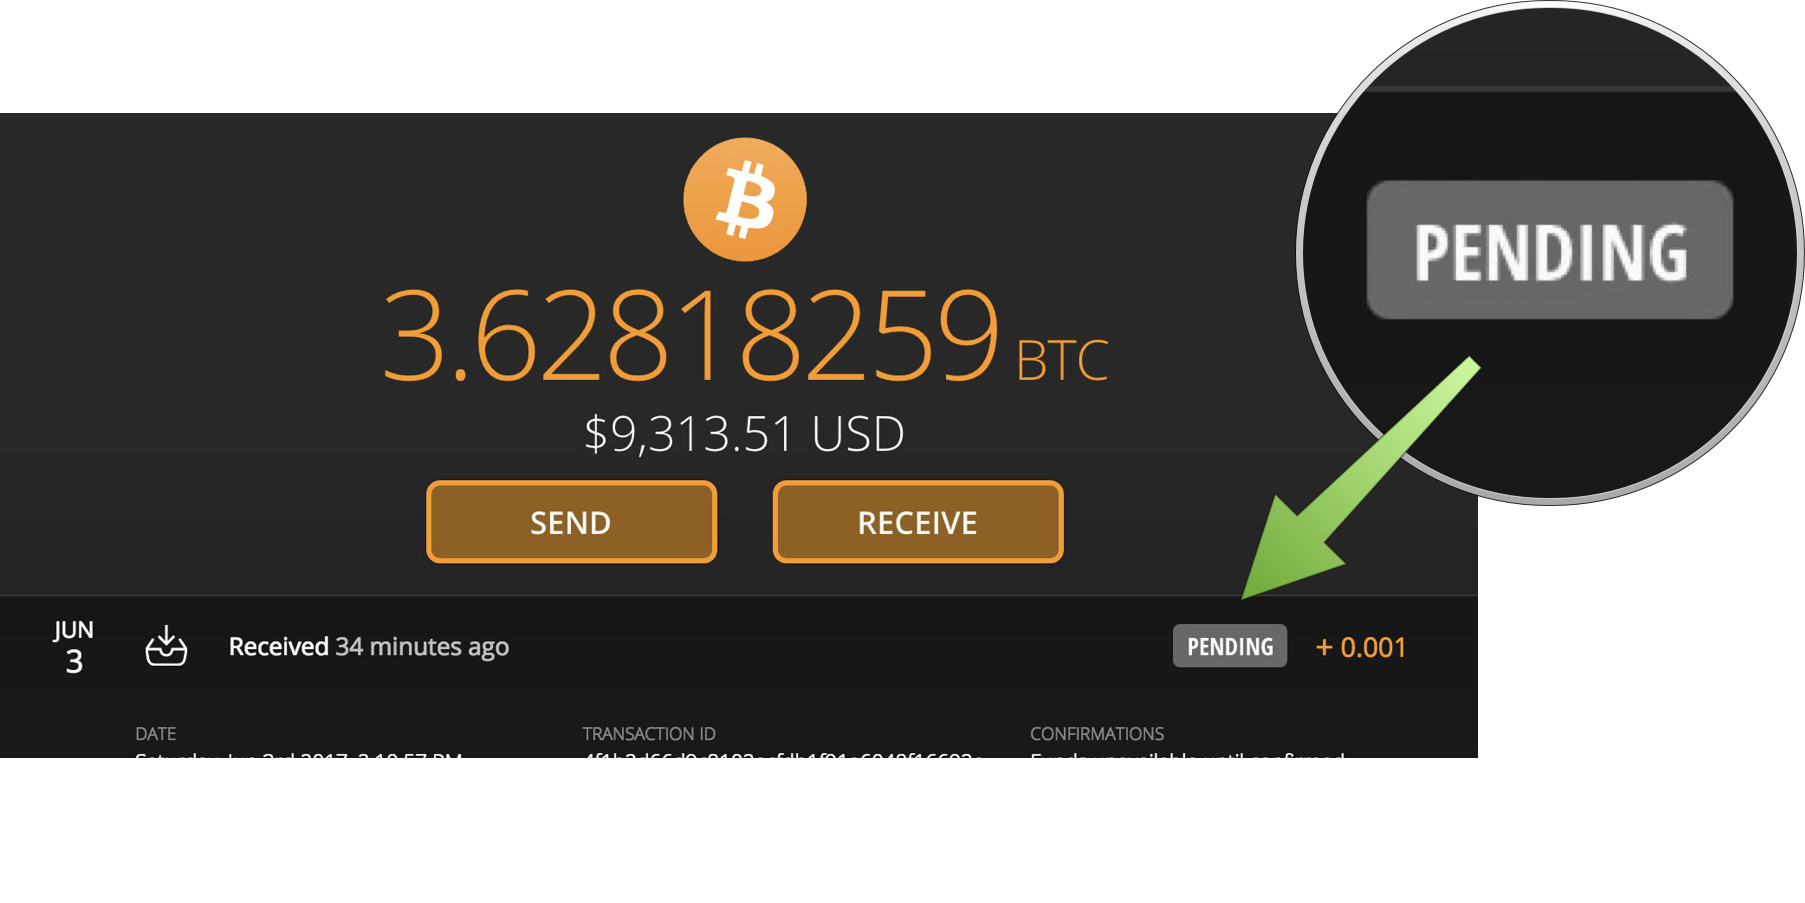 How is exodus so fast faq the bitcoin gold community forum note that while exodus will show you that a deposit is part of your balance while its pending it wont allow you to spend the portion that is pending ccuart Gallery